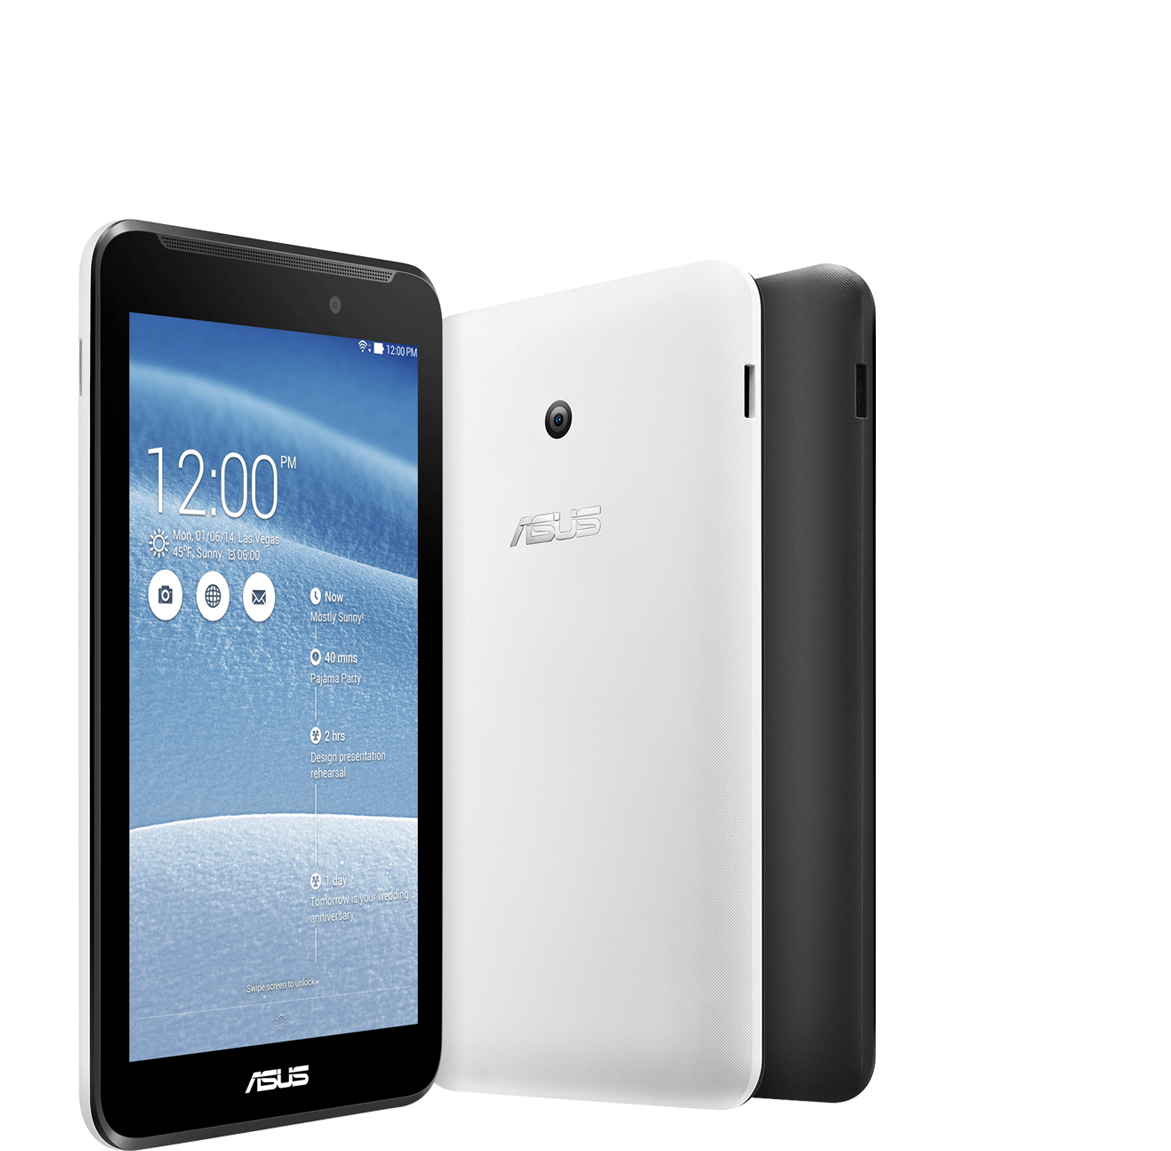 Description Asus Fonepad Android Tablet at Mobile World Congress 2013 ...